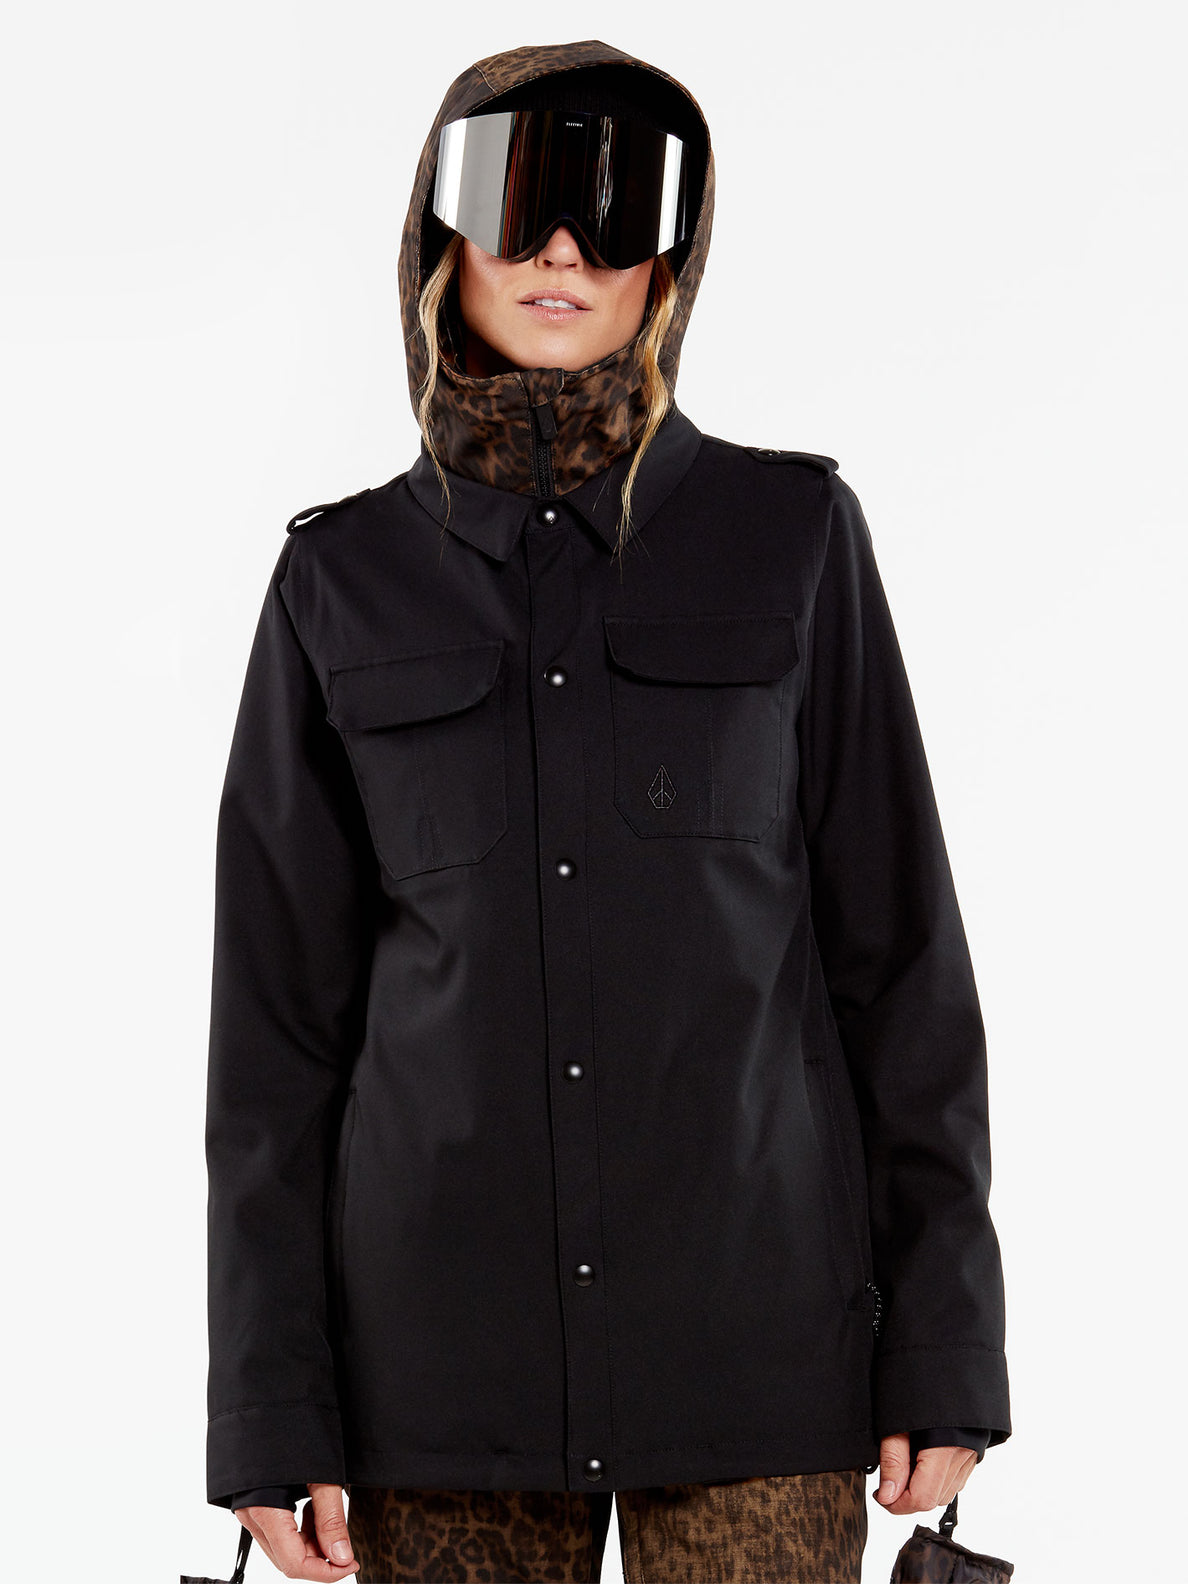 Kuma Jacket Black (H0652101_BLK) [1]